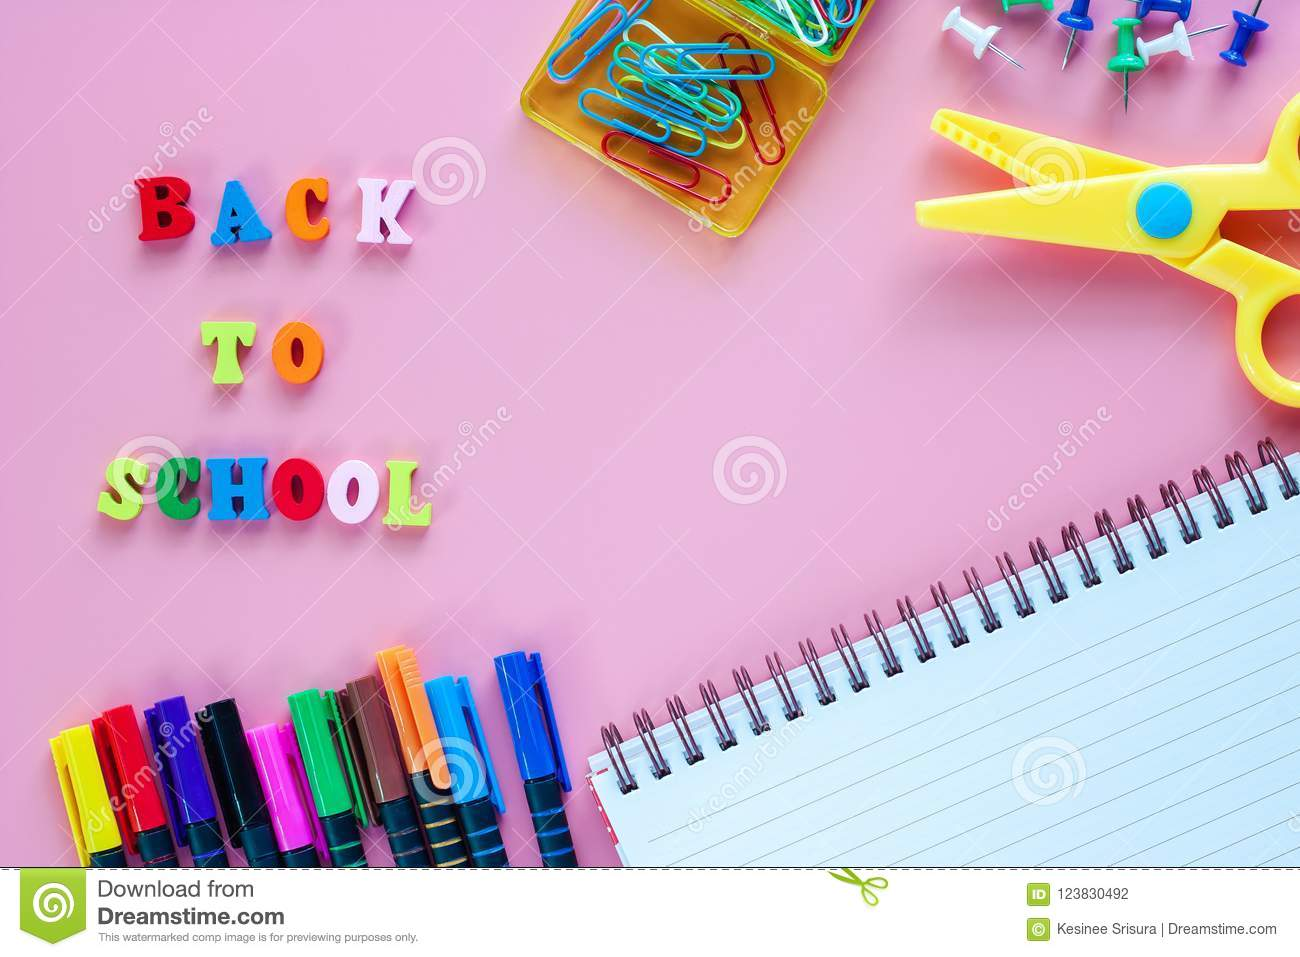 School supplies with wooden text BACK TO SCHOOL on pink background